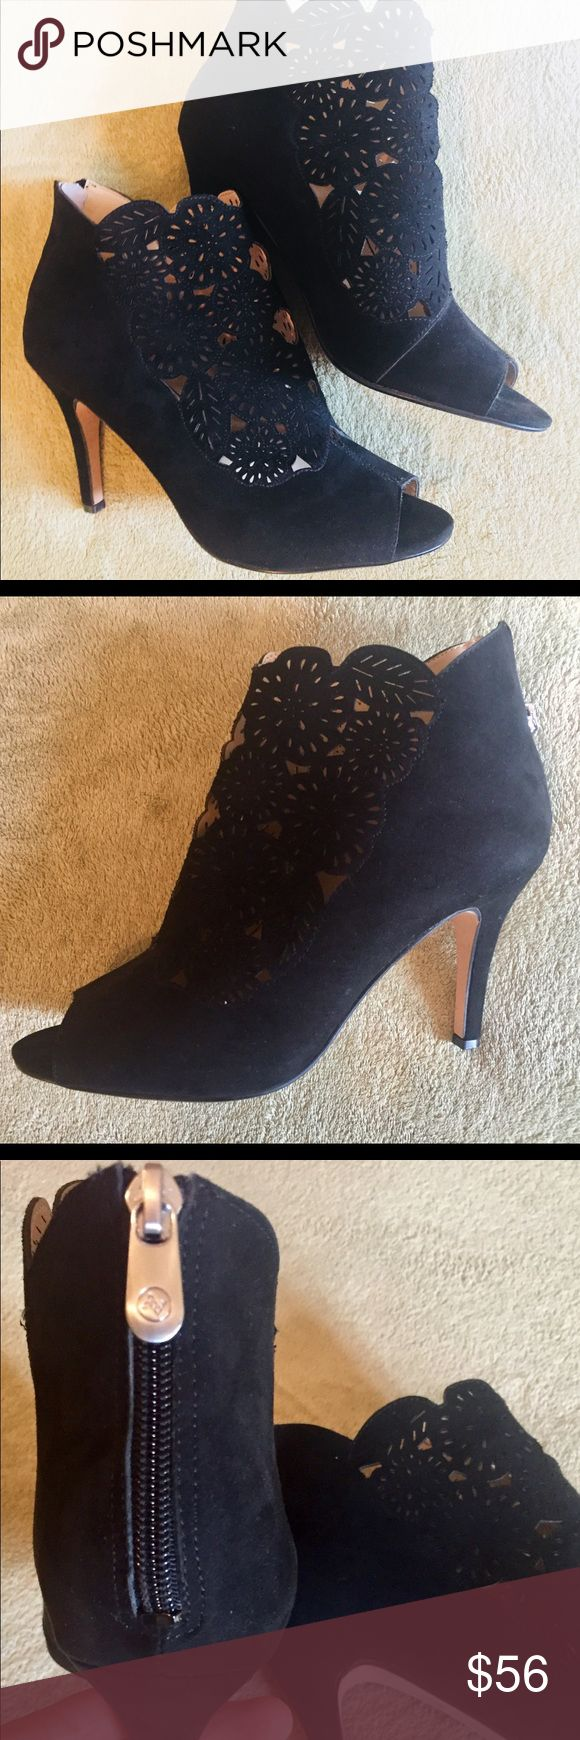 """Adrienne Vittadini suede black shoes size 10 ❤️ New without box. Beautiful suede shoes size 10 ❤️  Heel: 4"""" approx.  NOTE: Shoes have some scuffing/spots on the outsoles from being tried on or/and original price being removed. Please see pictures for details. Adrienne Vittadini Shoes Heels"""